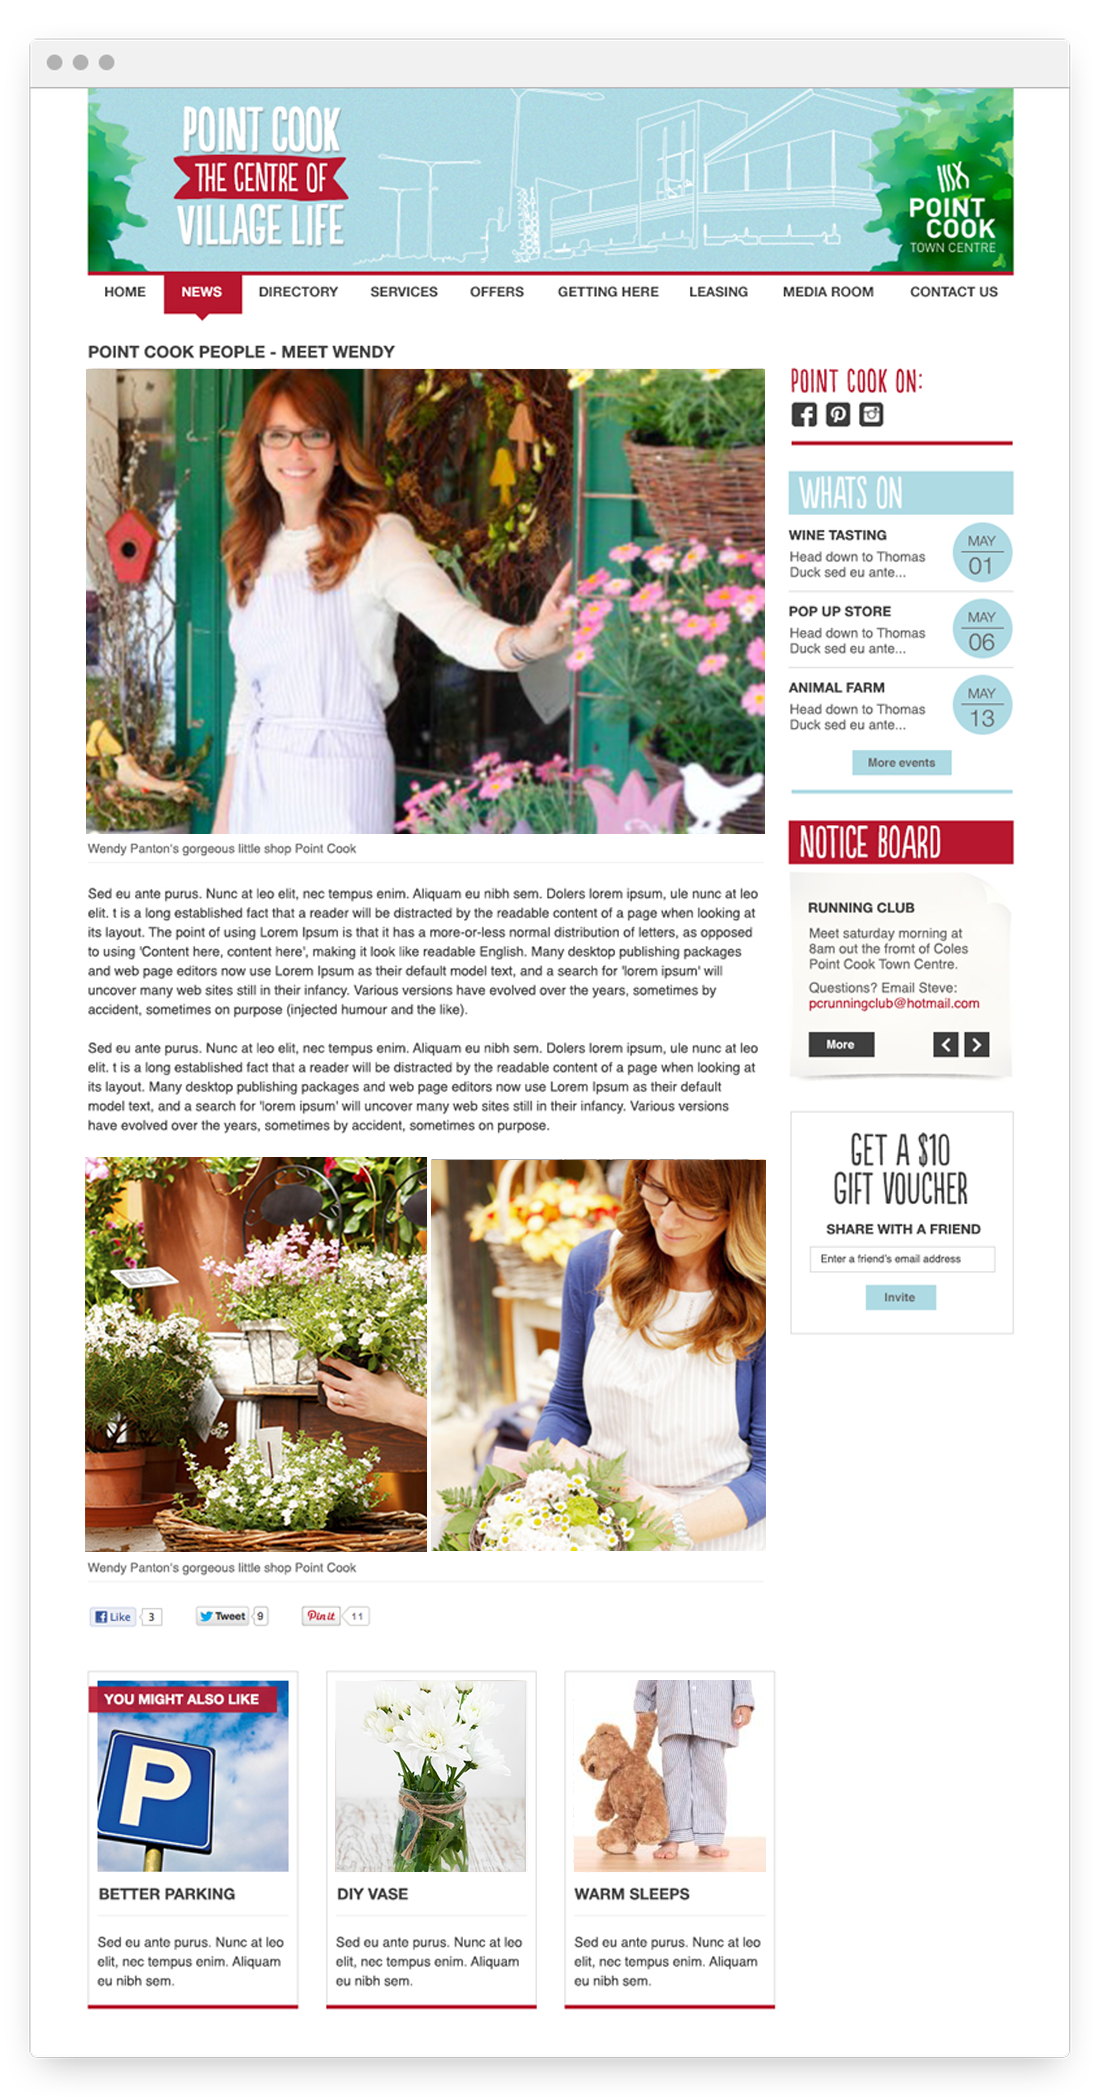 Point Cook article mockup - Design by Kristy